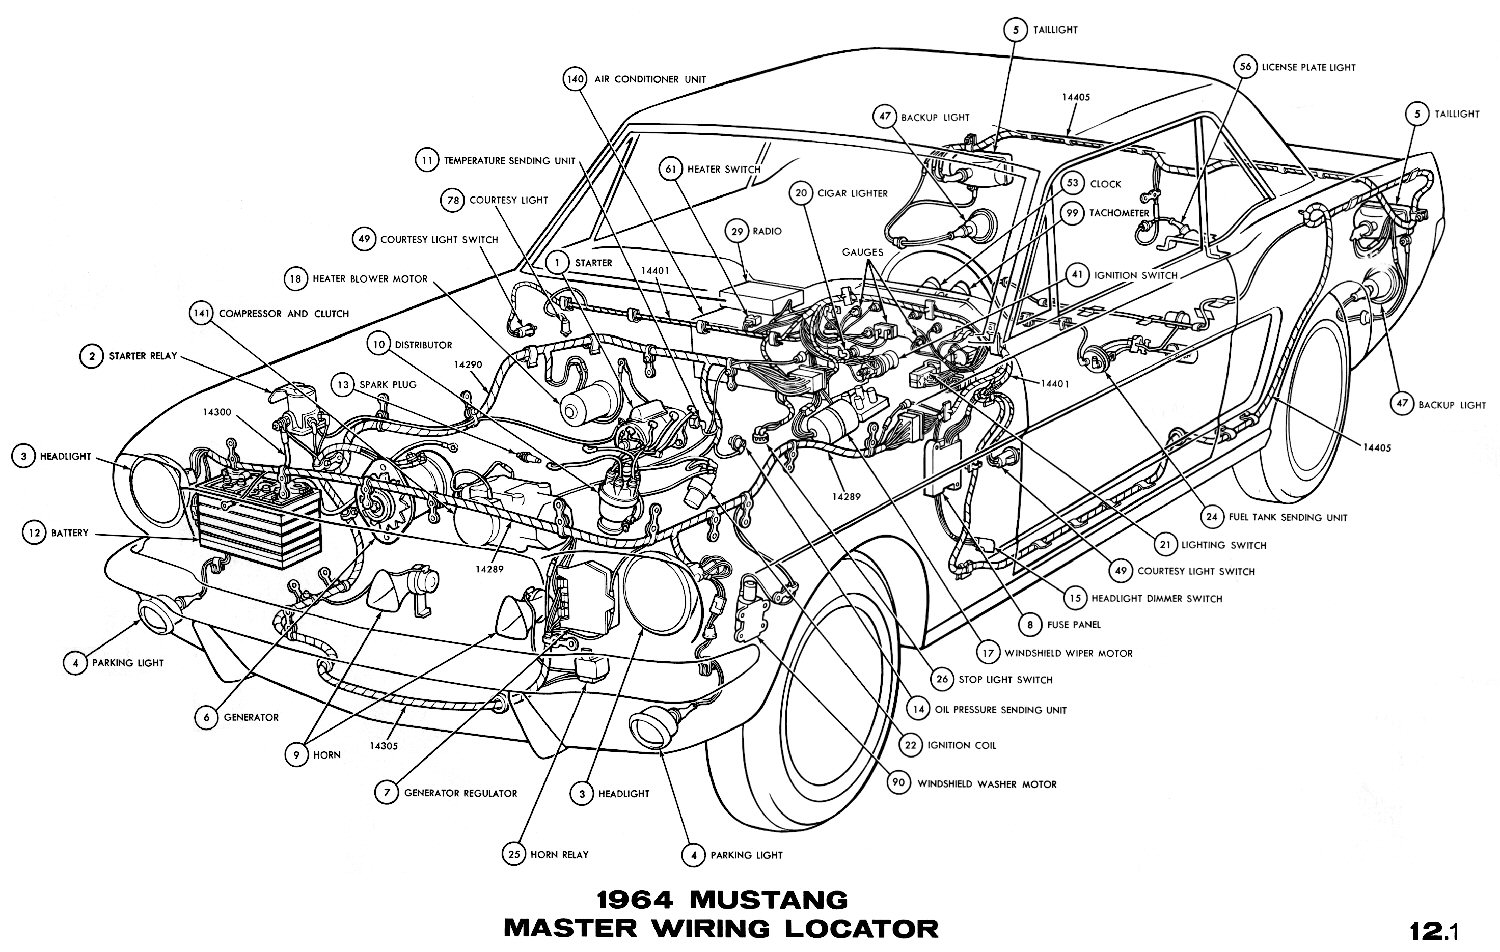 1964 Mustang Wiring Diagrams Average Joe Restoration 67 Voltage Regulator Diagram Master Pictorial